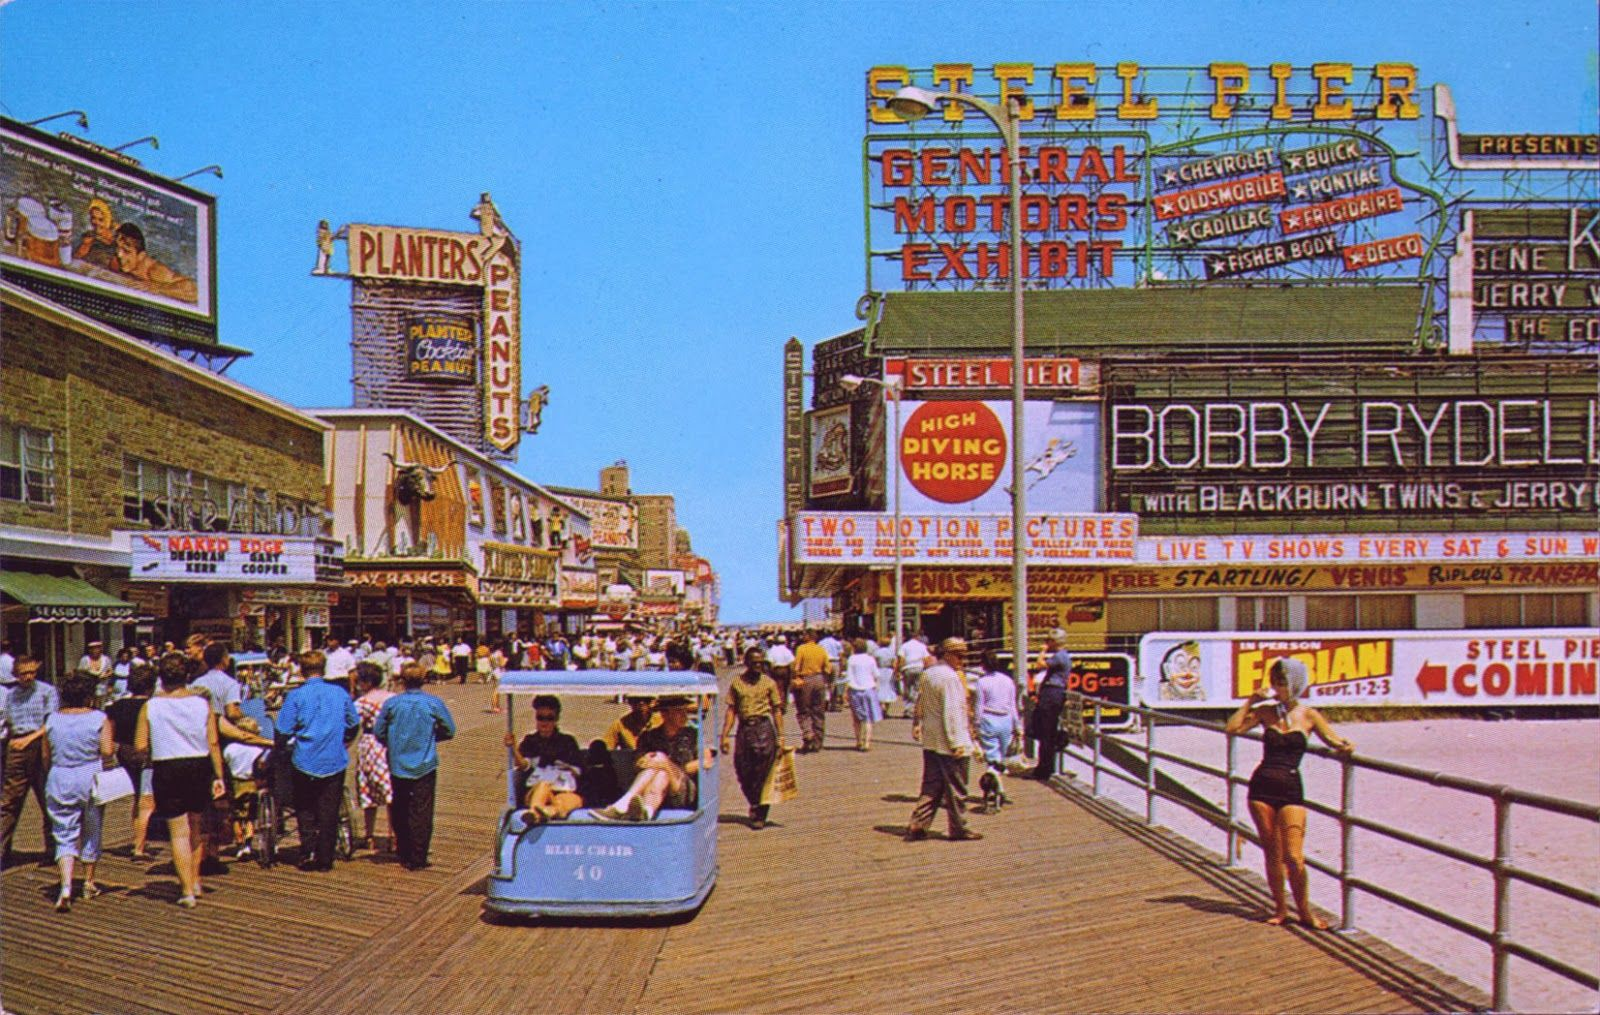 19 Wonderful Color Photos Capture Scenes Of The Atlantic City Beach And Boardwalk From Between 1950s 60s